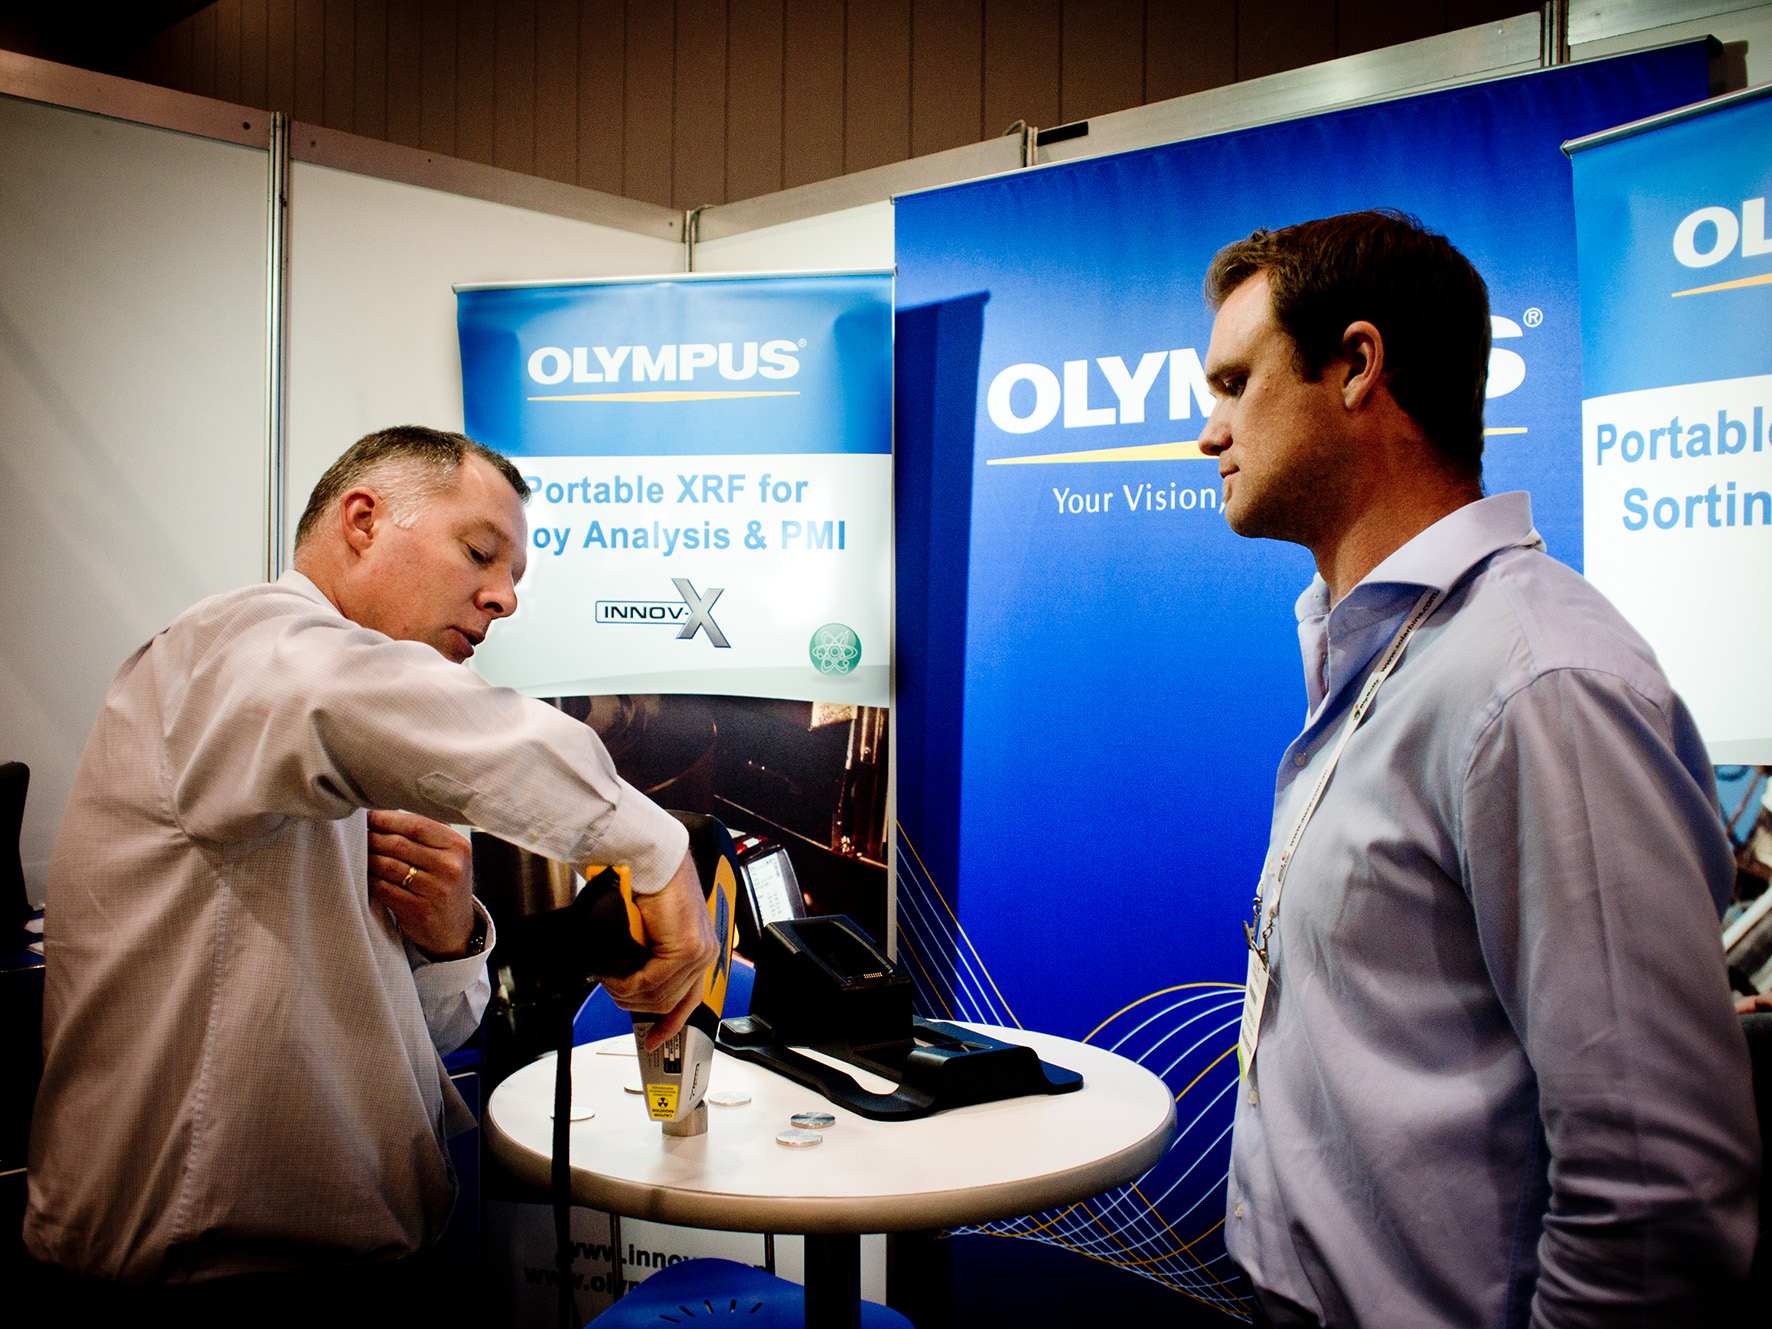 Olympus instrumentation for the recycling industry